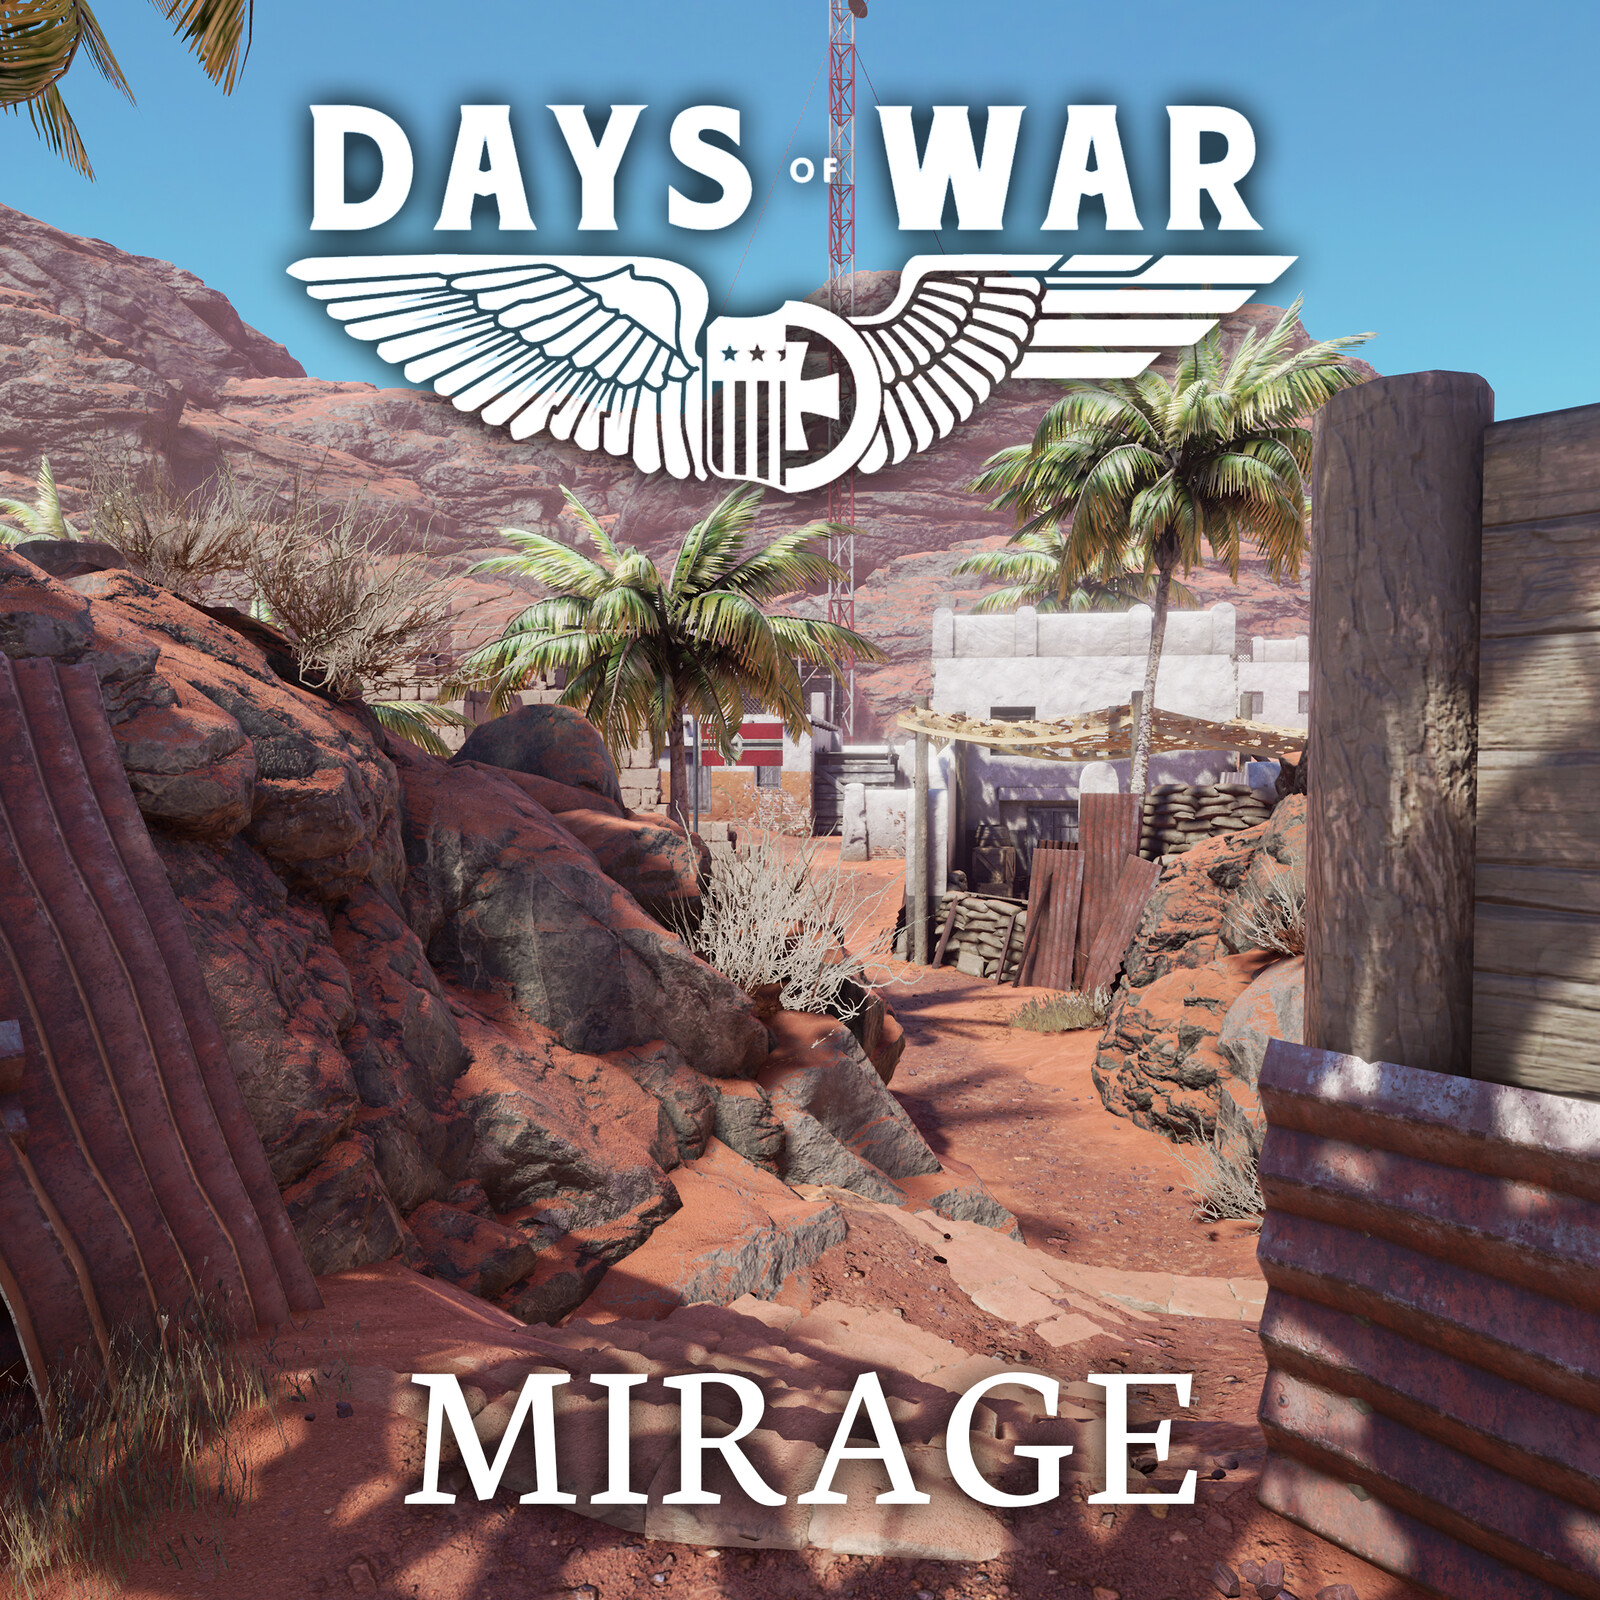 Days of War - Mirage